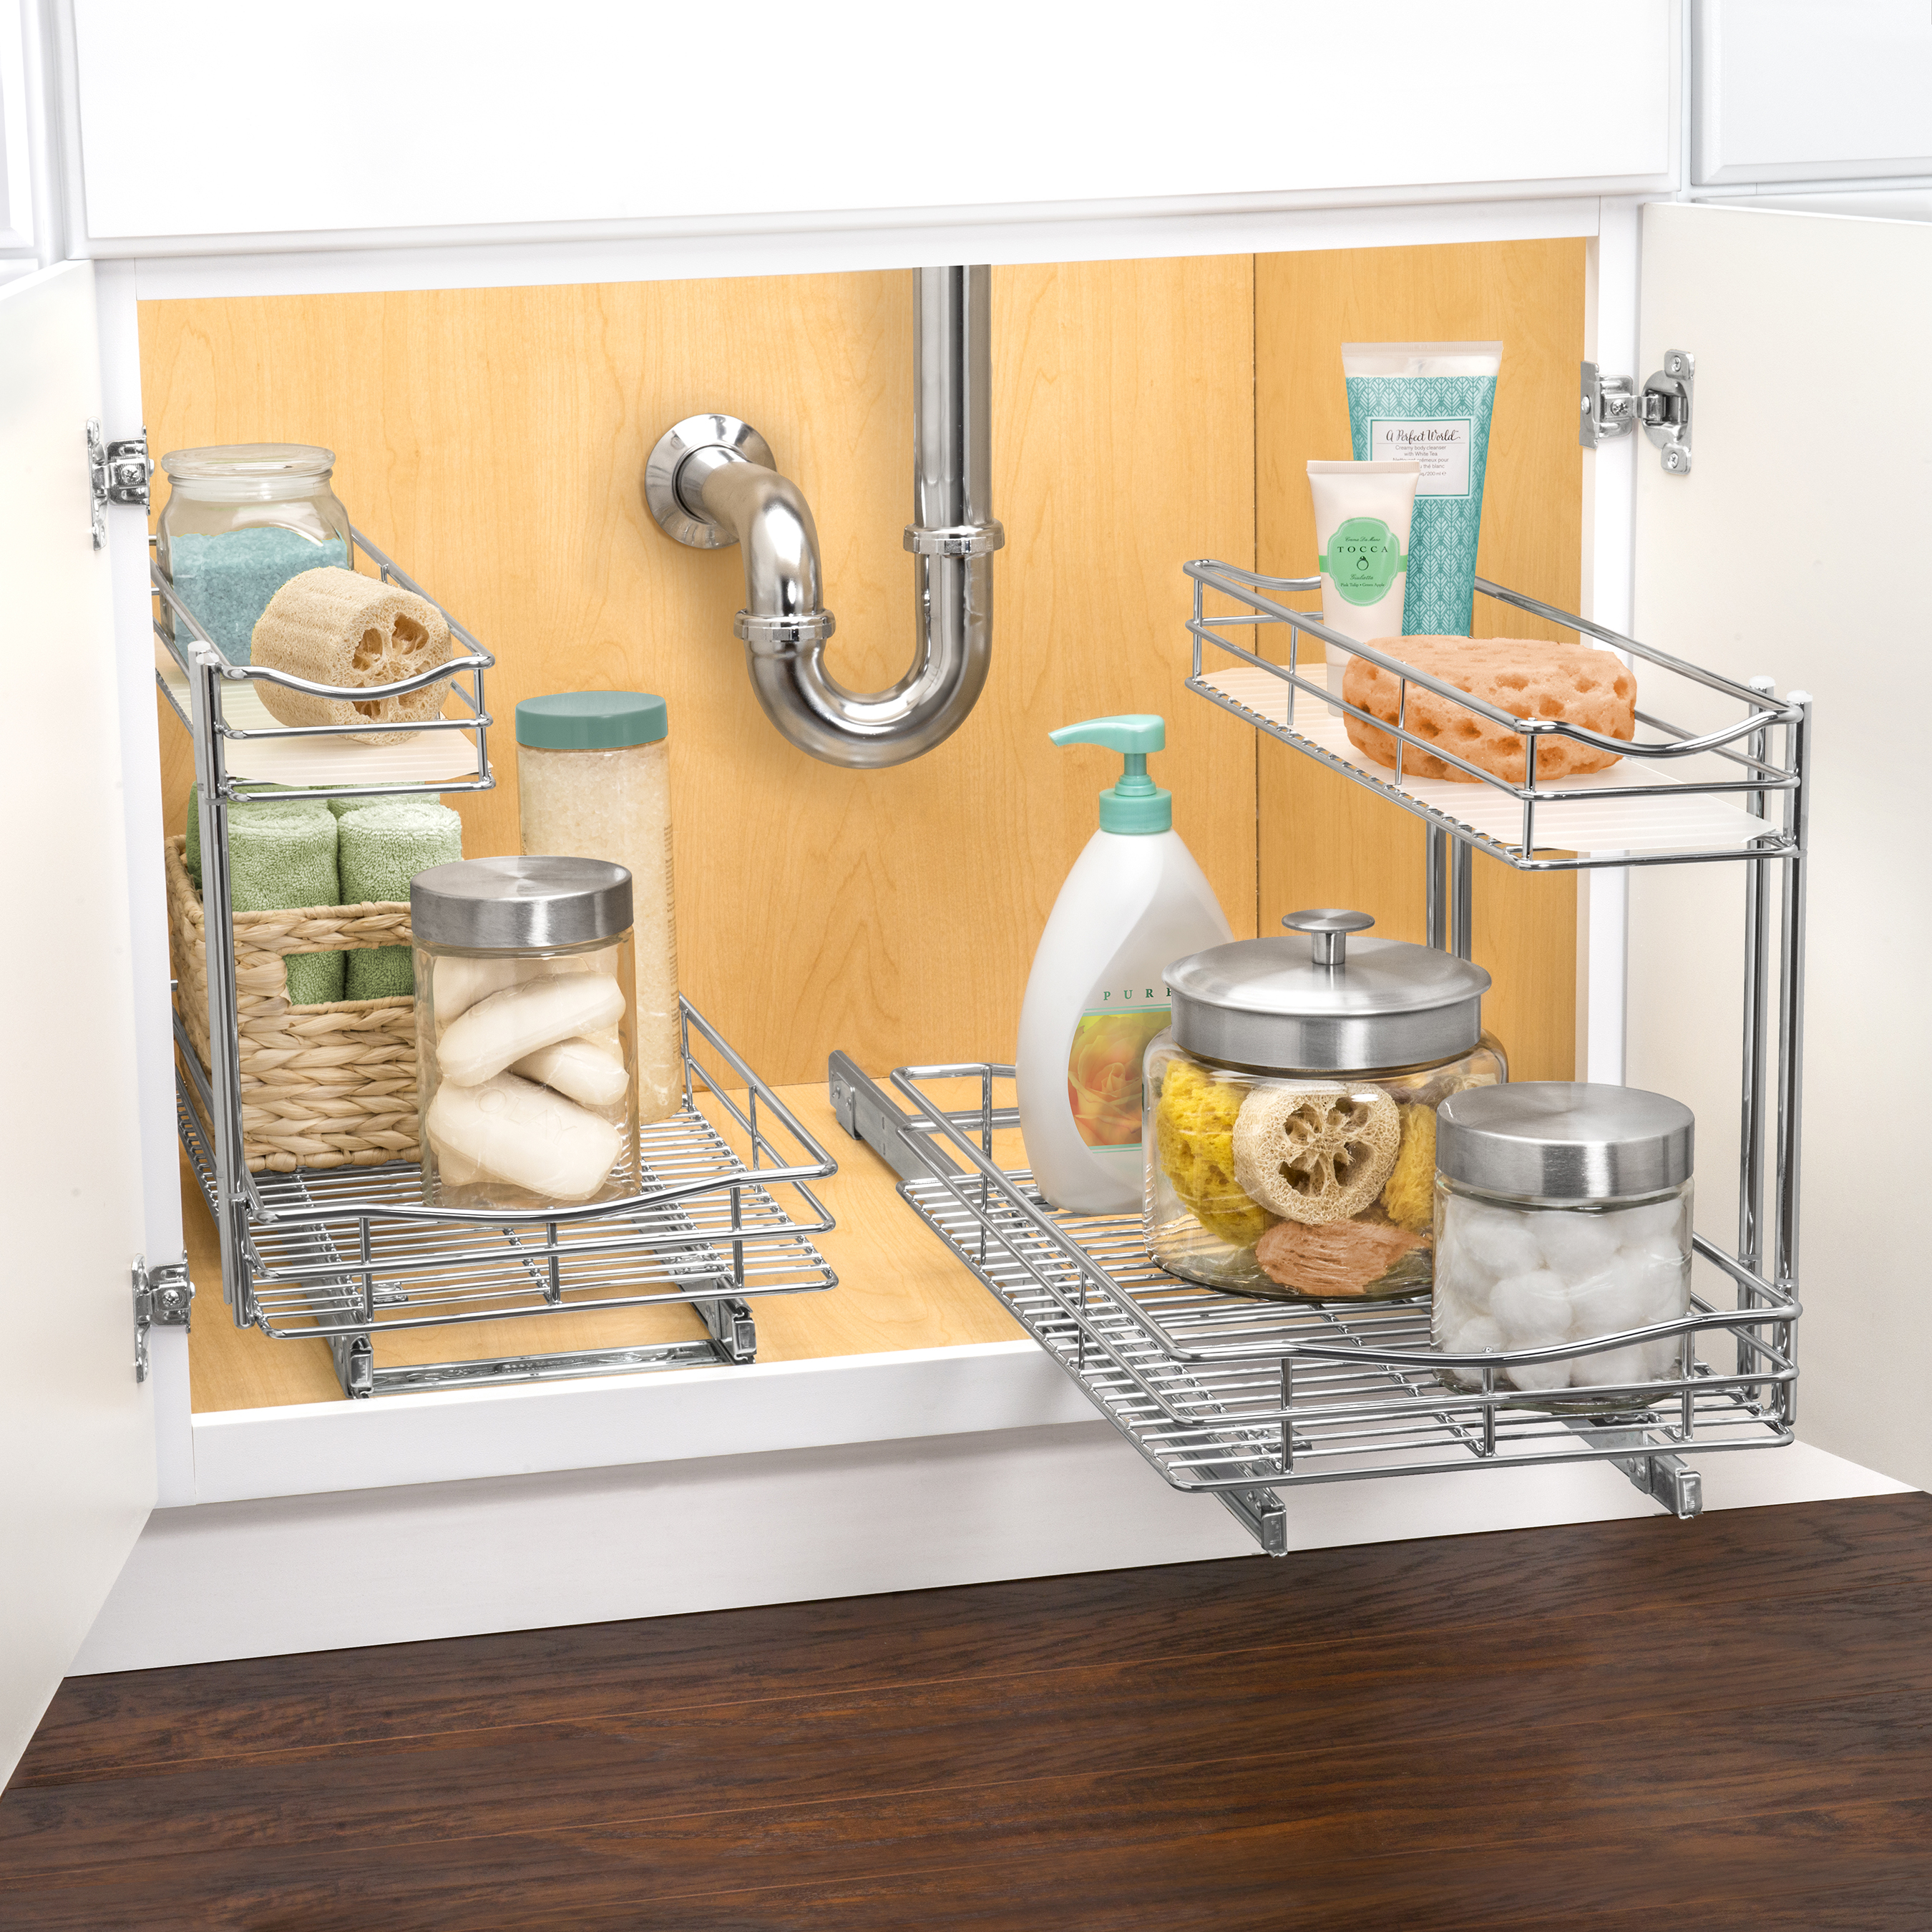 Lynk Professional Roll Out Under Sink Cabinet Organizer, Pull Out Two Tier  Sliding Shelf,